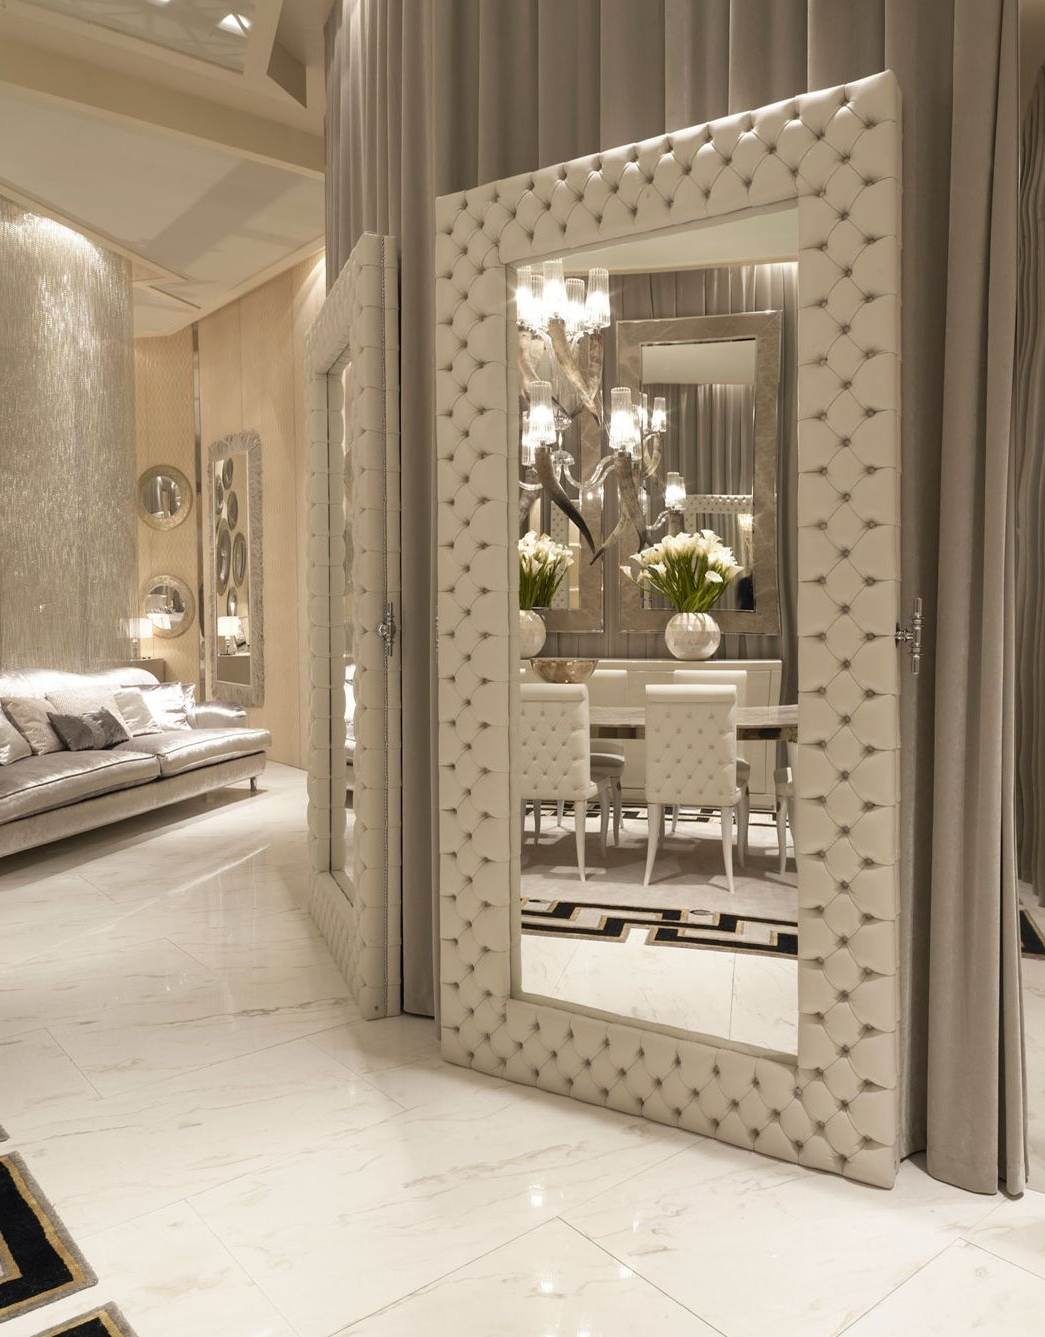 Leather Wall Mirrors With Regard To Well Liked Instyle Decor Wall Mirrors, Luxury Designer Wall Mirrors, Modern (View 18 of 20)